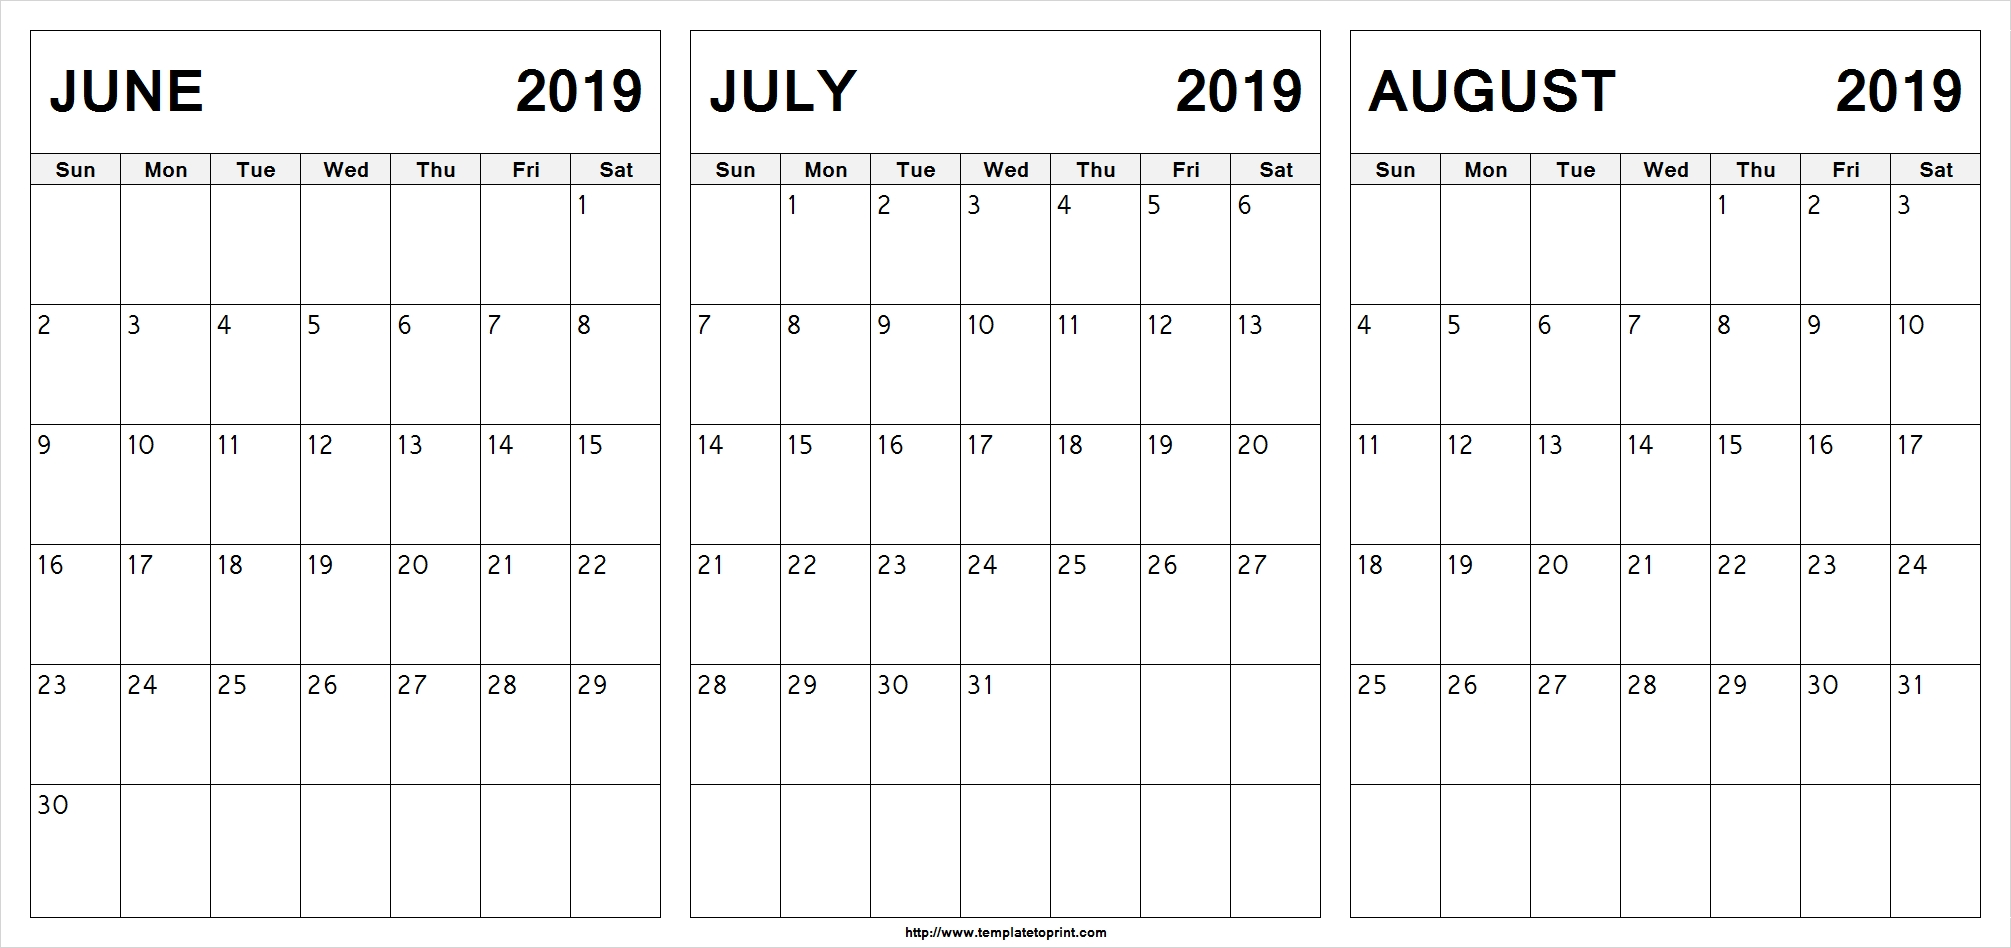 Free June July August 2019 Calendar (3 Months) Printable-Printable Blank Calendars June July August